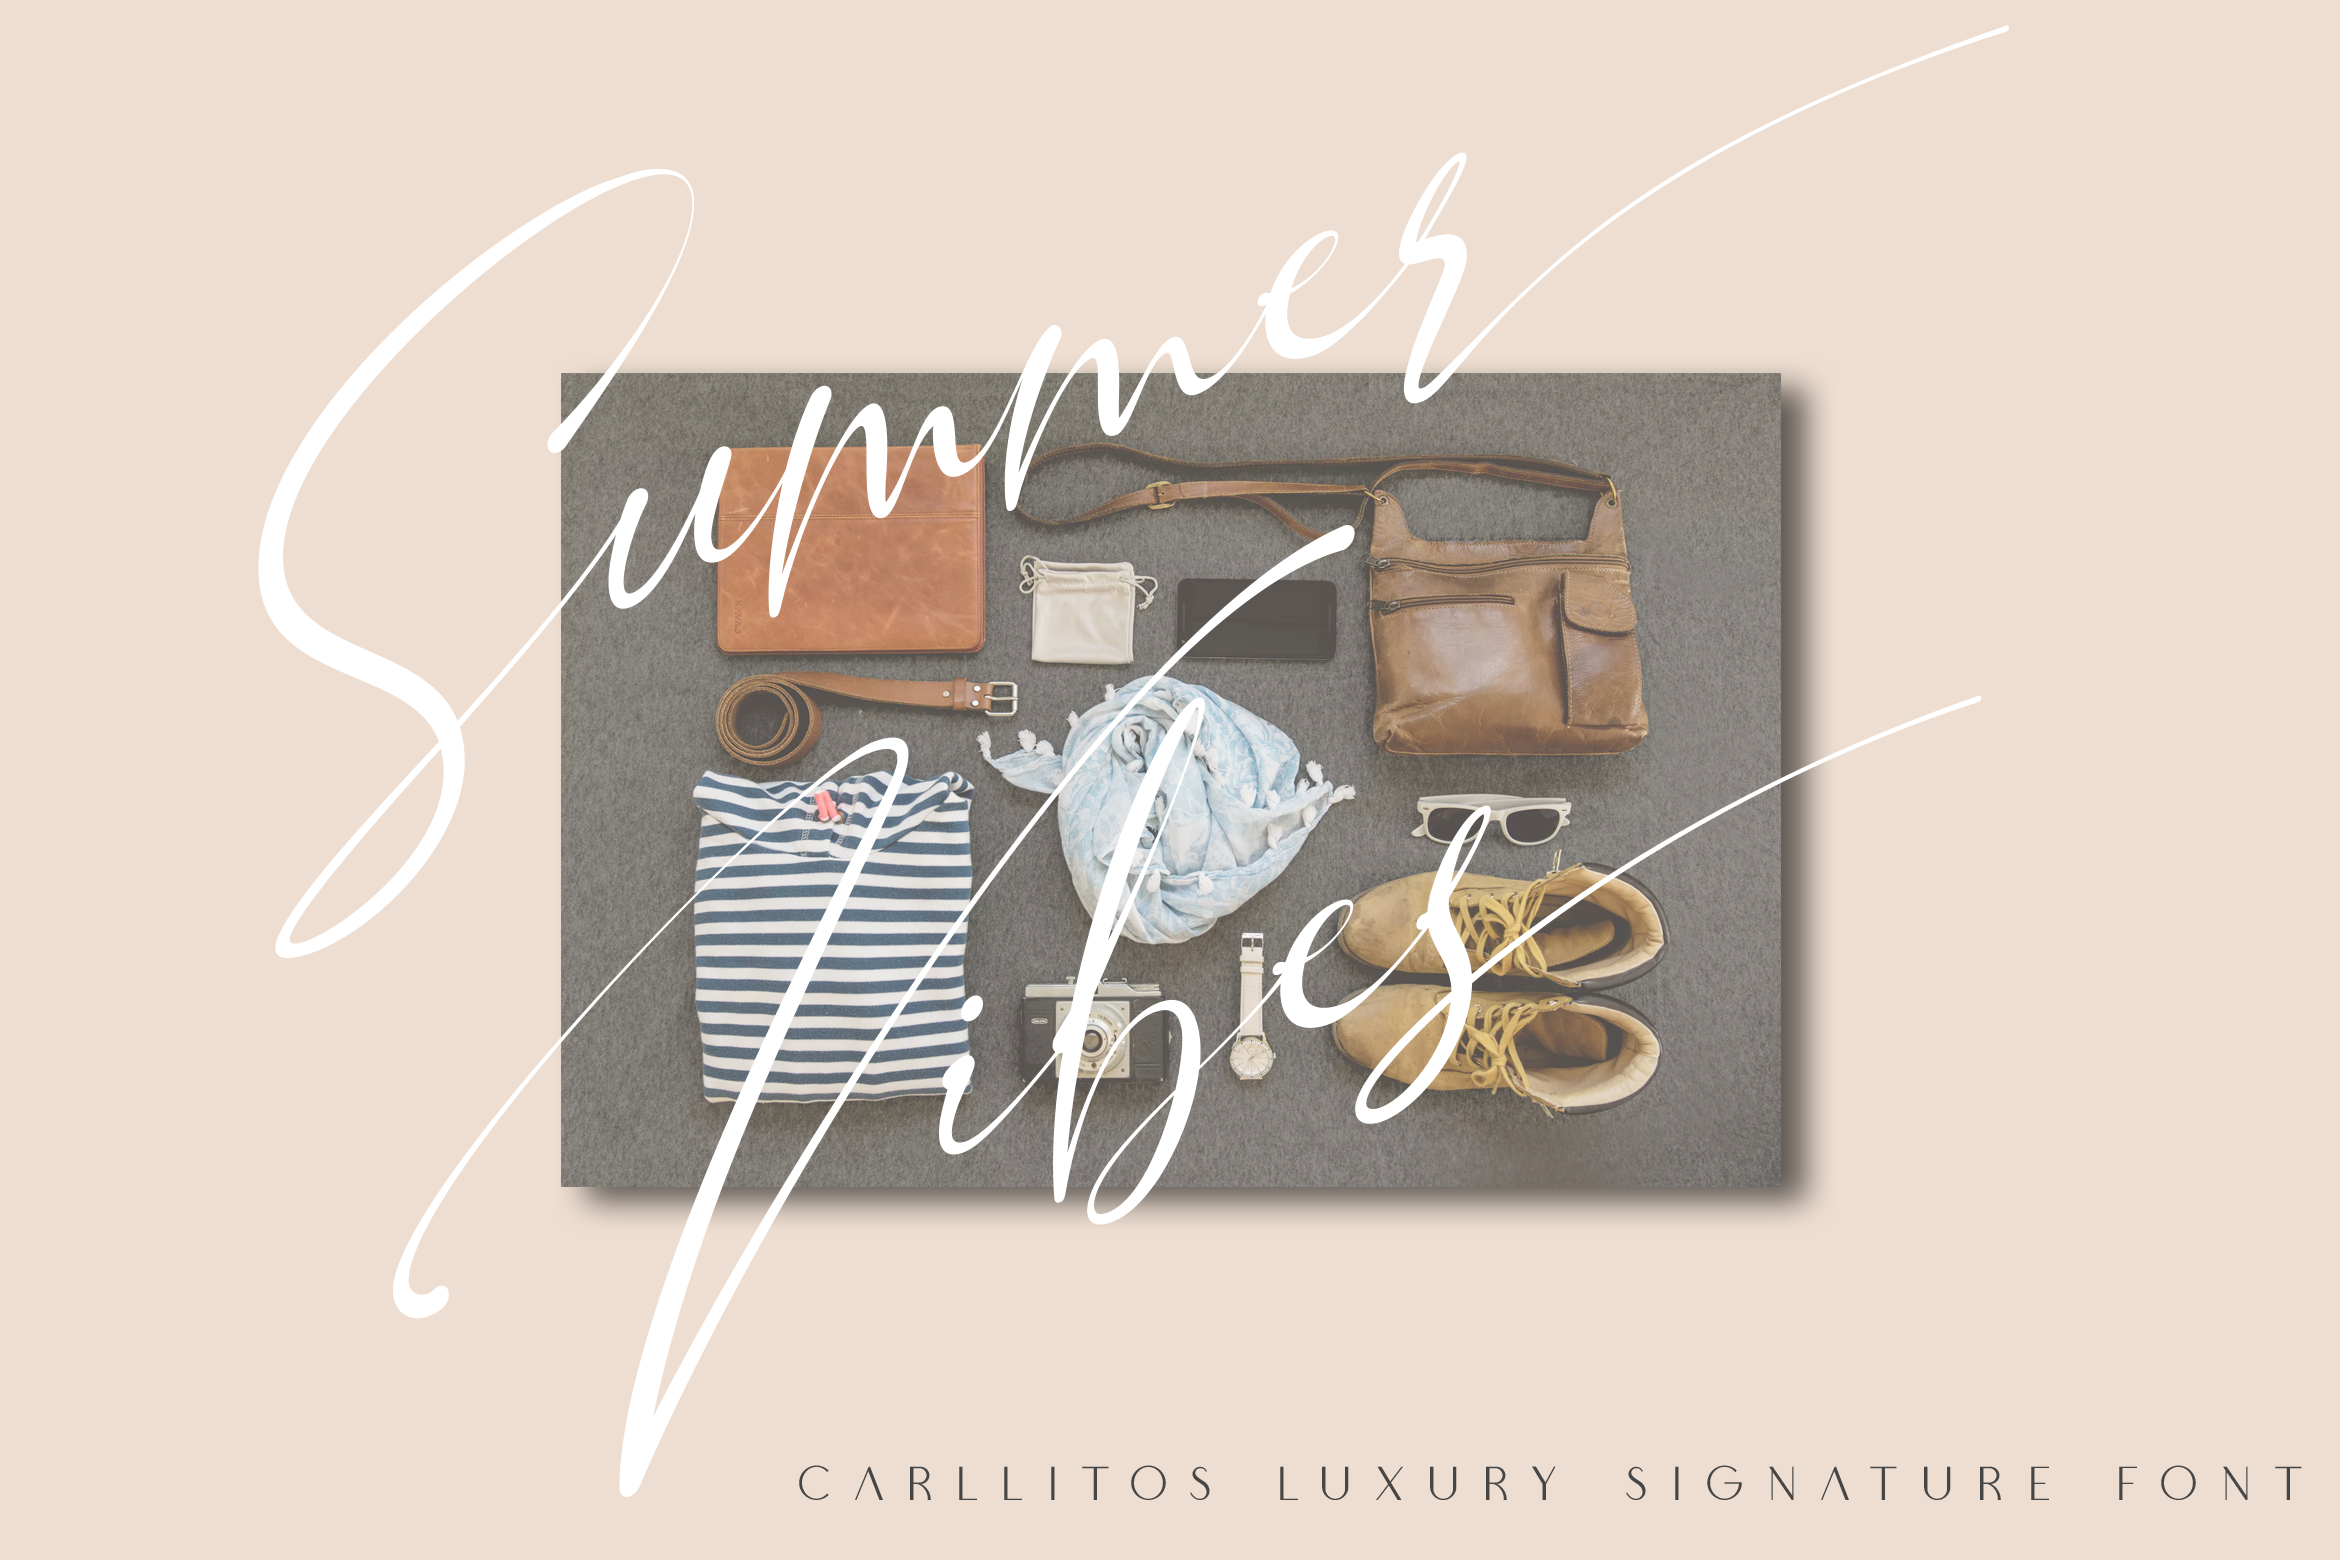 Carllitos // Luxury Signature Font example image 2